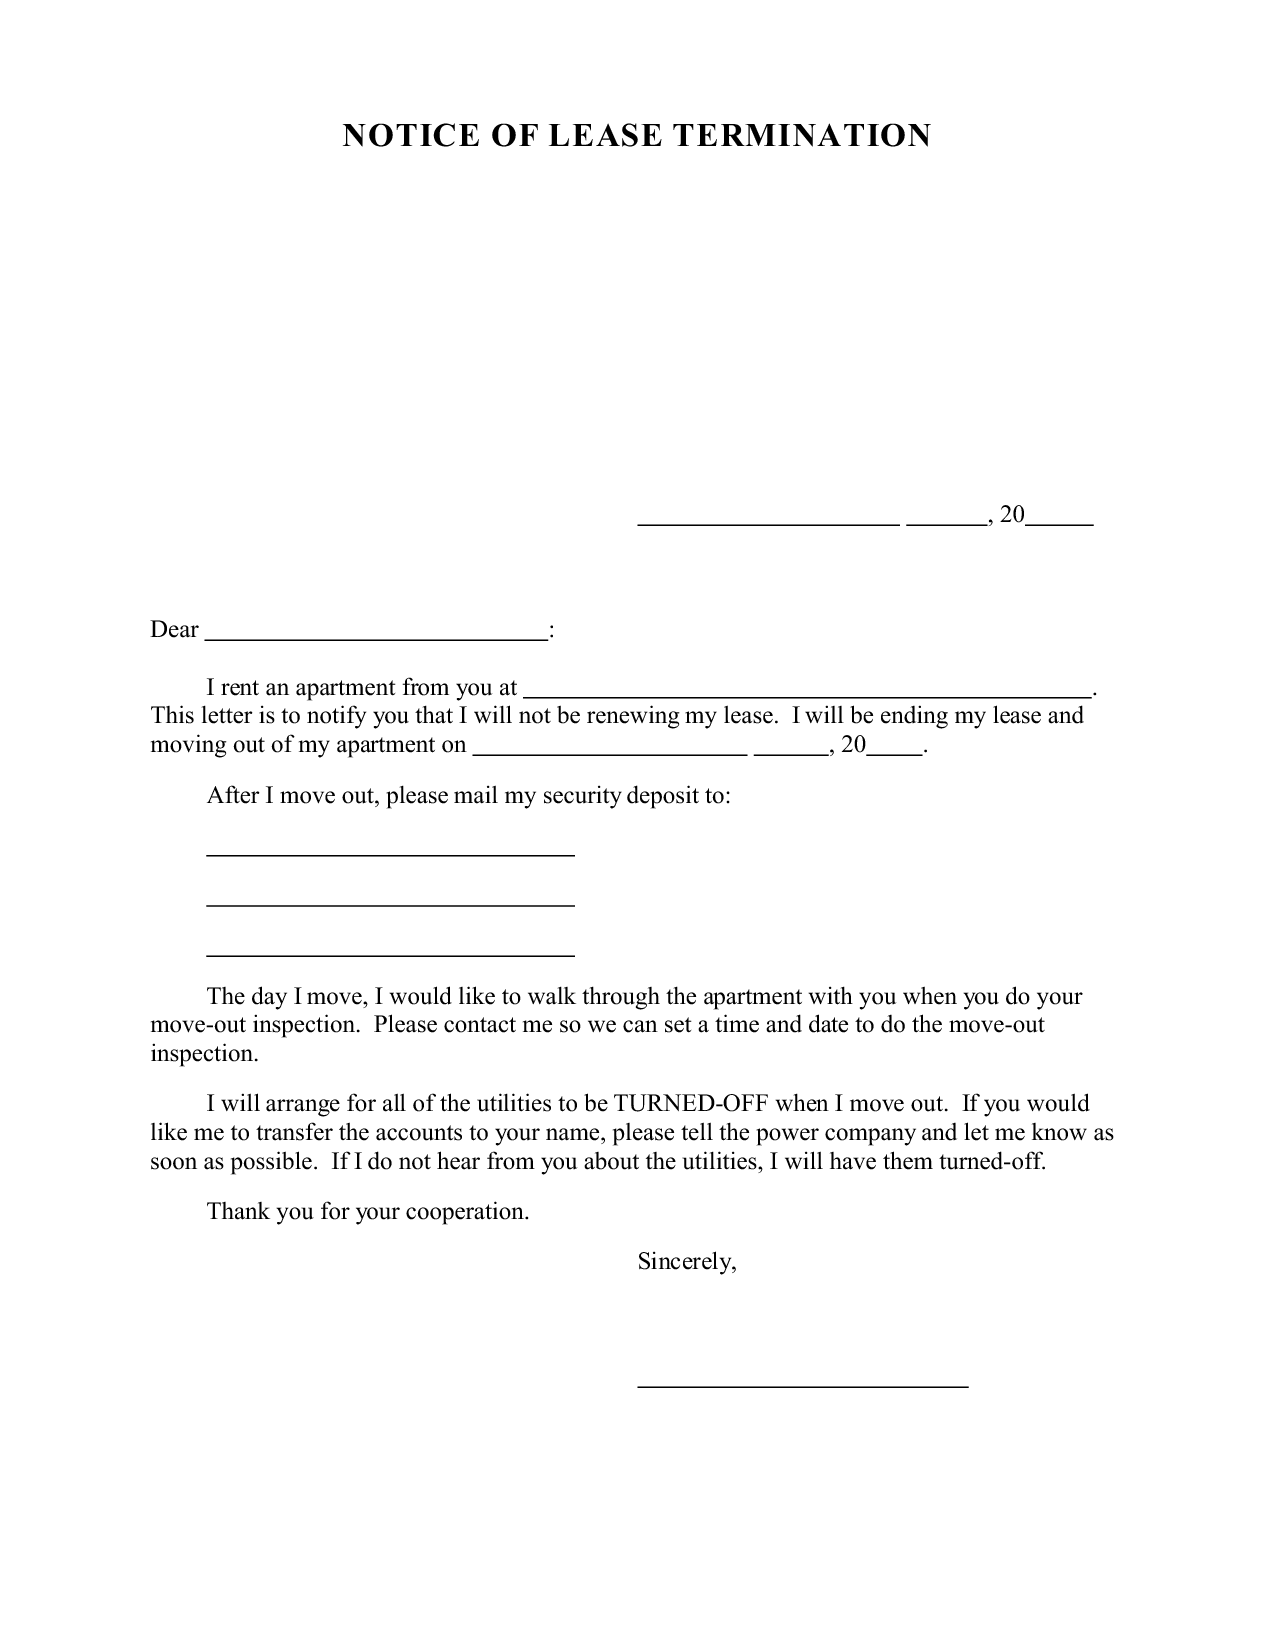 Letter Of Not Renewing Lease Free Printable Documents Letter Template Word Being A Landlord Lettering